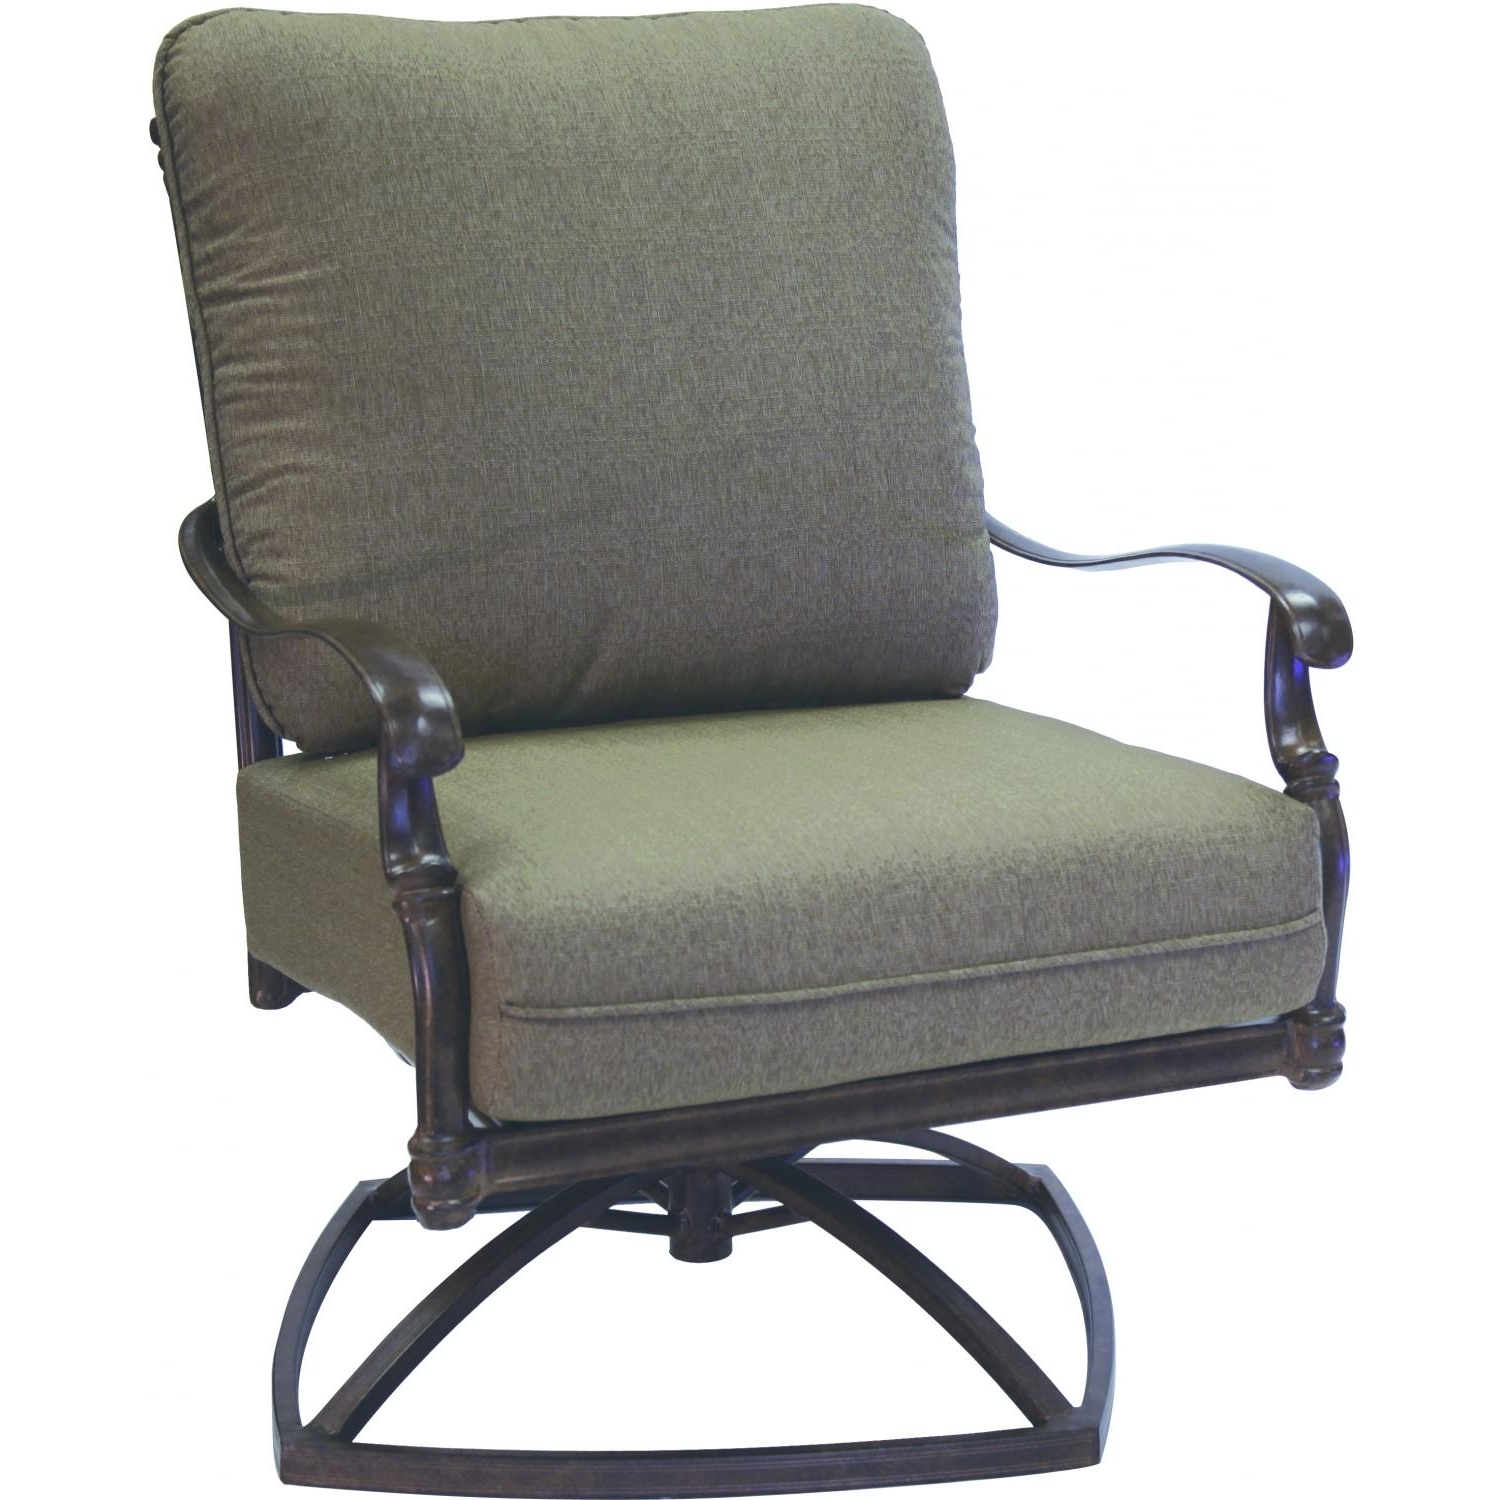 Most Recent Aluminum Patio Rocking Chairs Intended For Furniture: Inspirational Swivel Rocker Patio Chair With Outdoor (View 9 of 20)